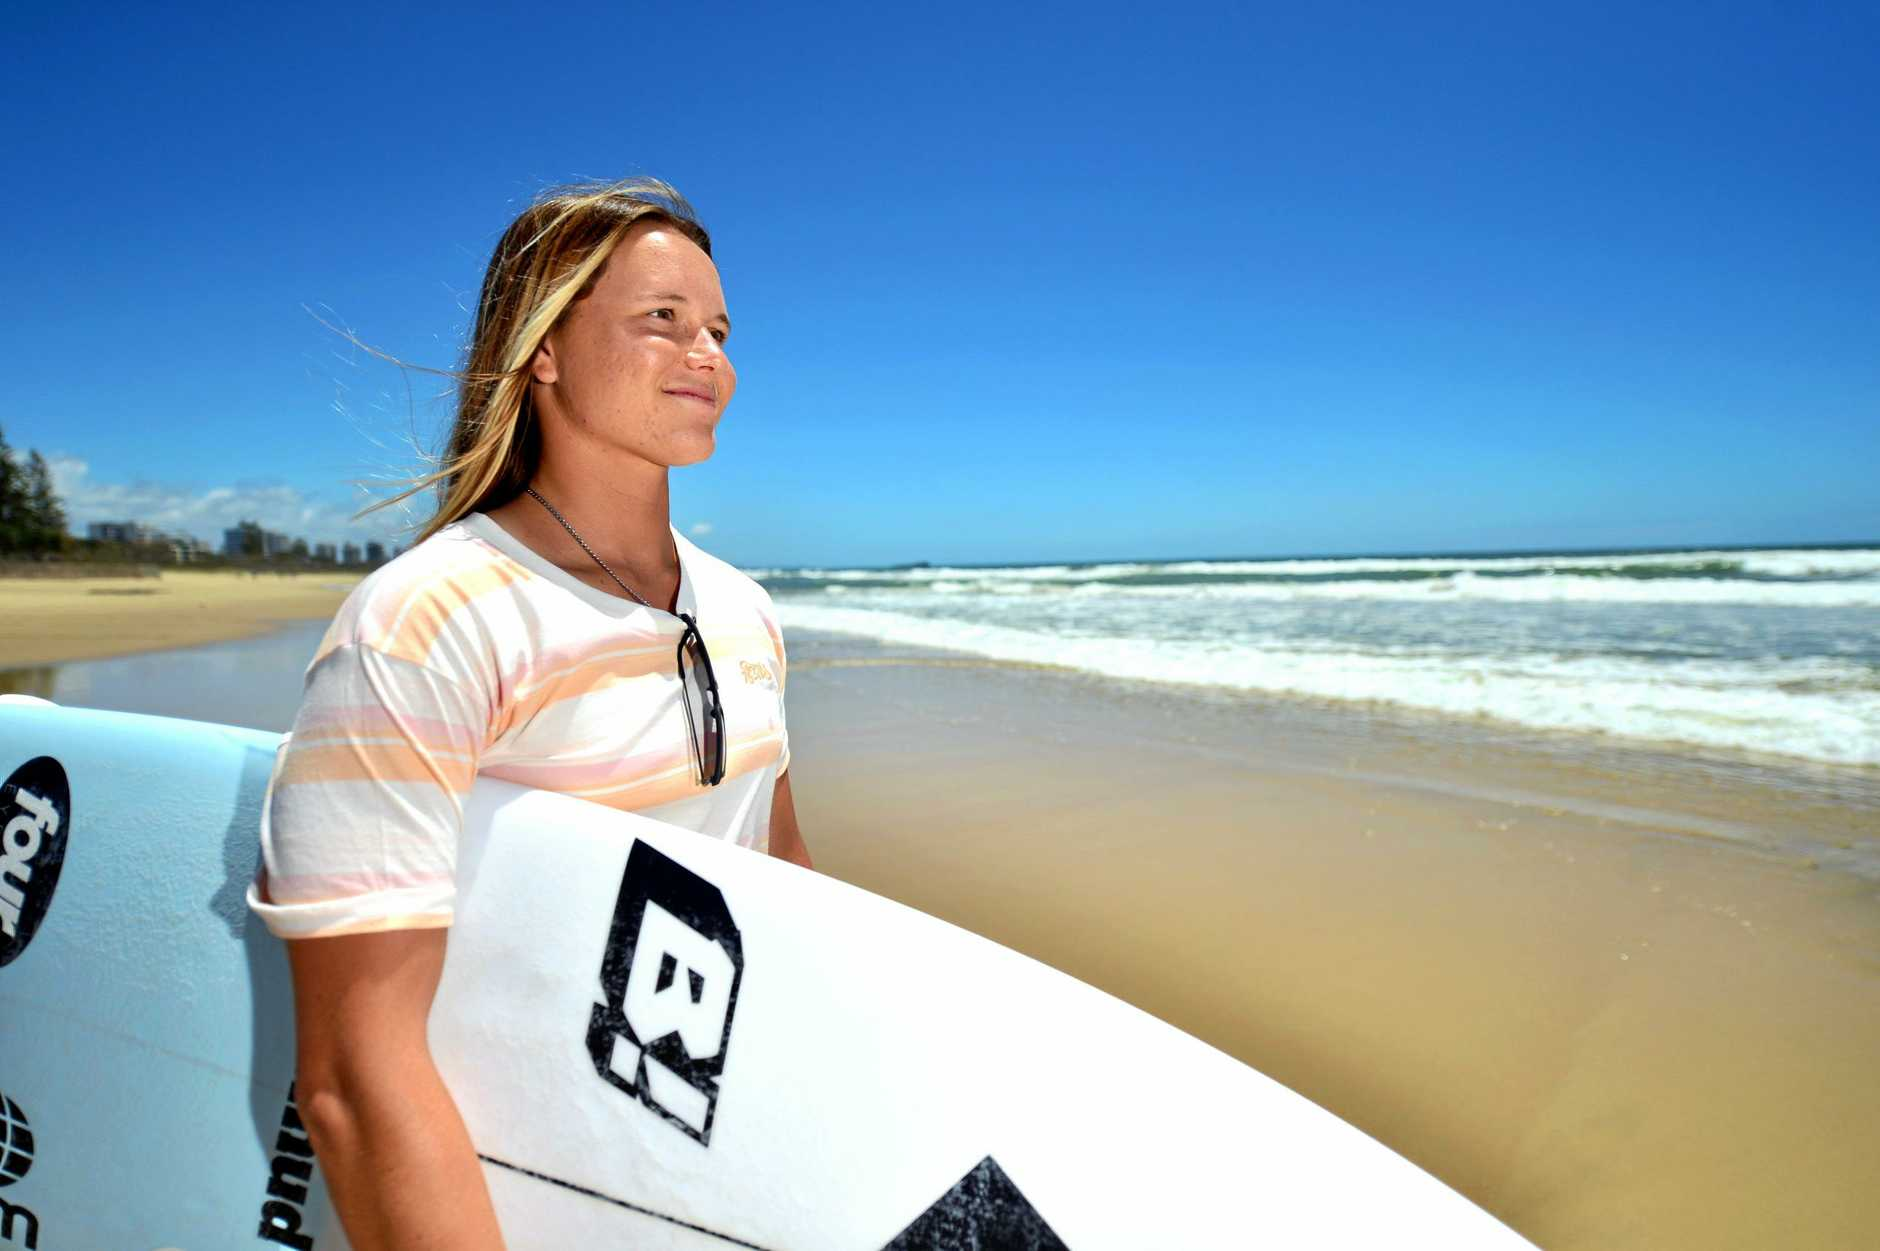 Professional surfer Keely Andrew is looking forward to getting back in the water after a 15 week lay-off with injury.